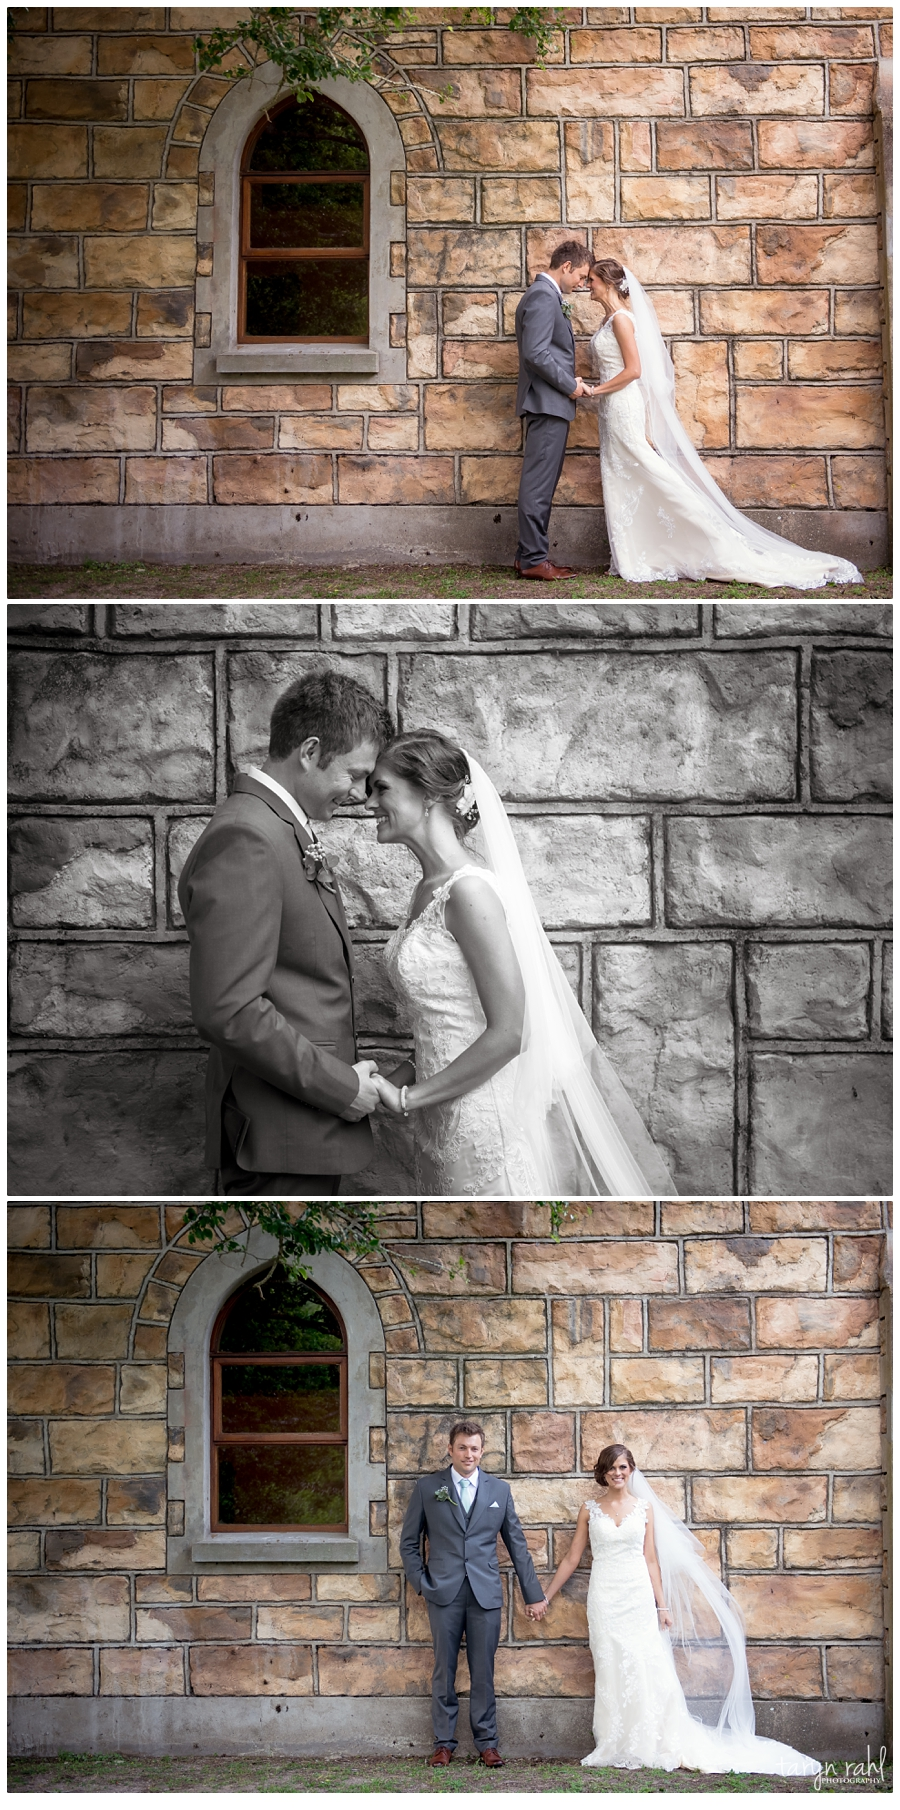 Jeanette and Evert | Wedding @ Lake De La Vie